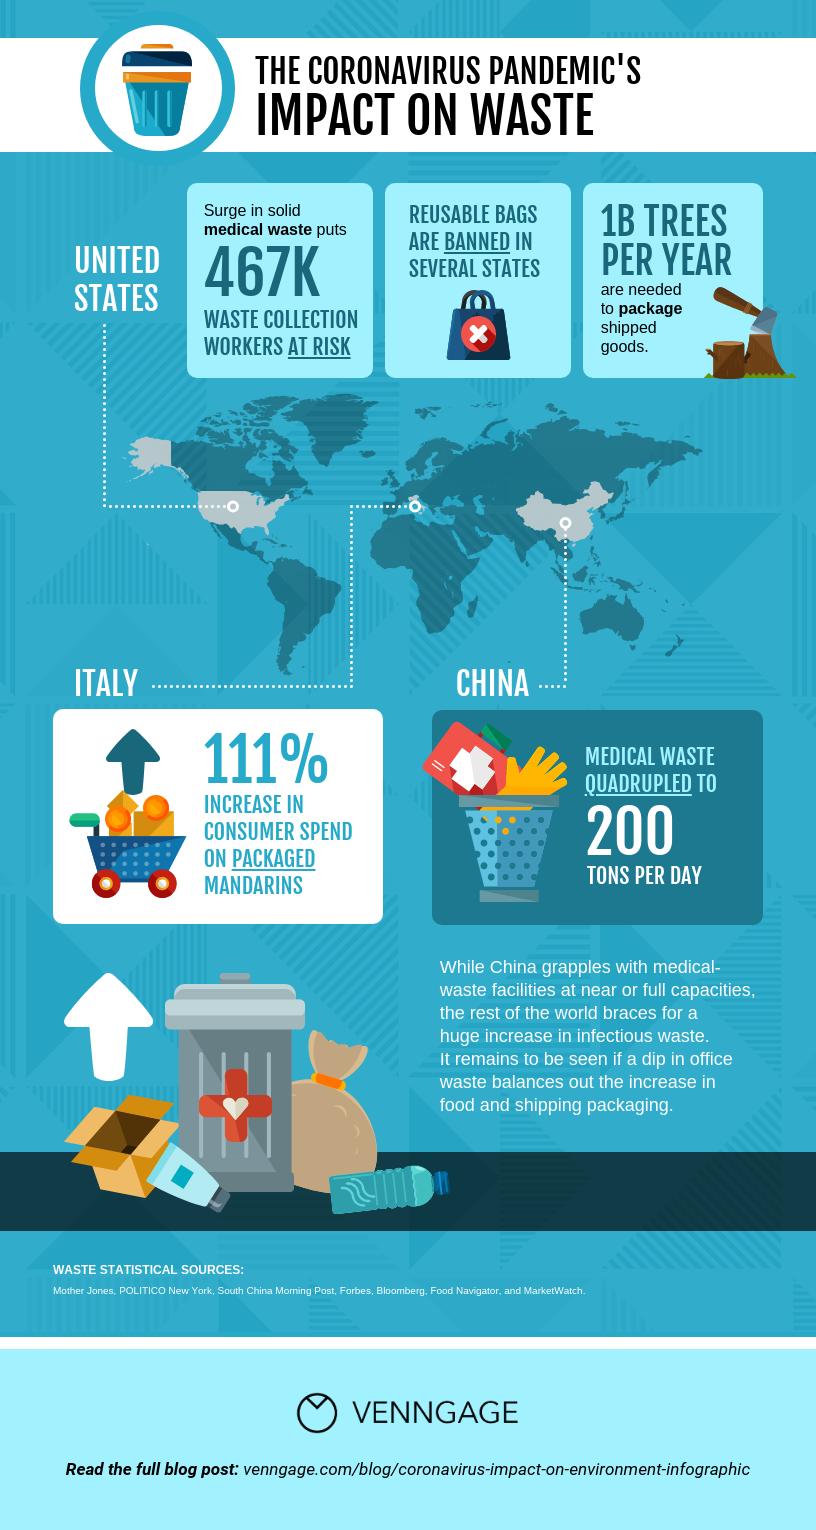 Pandemic's Impact on Waste Map Infographic